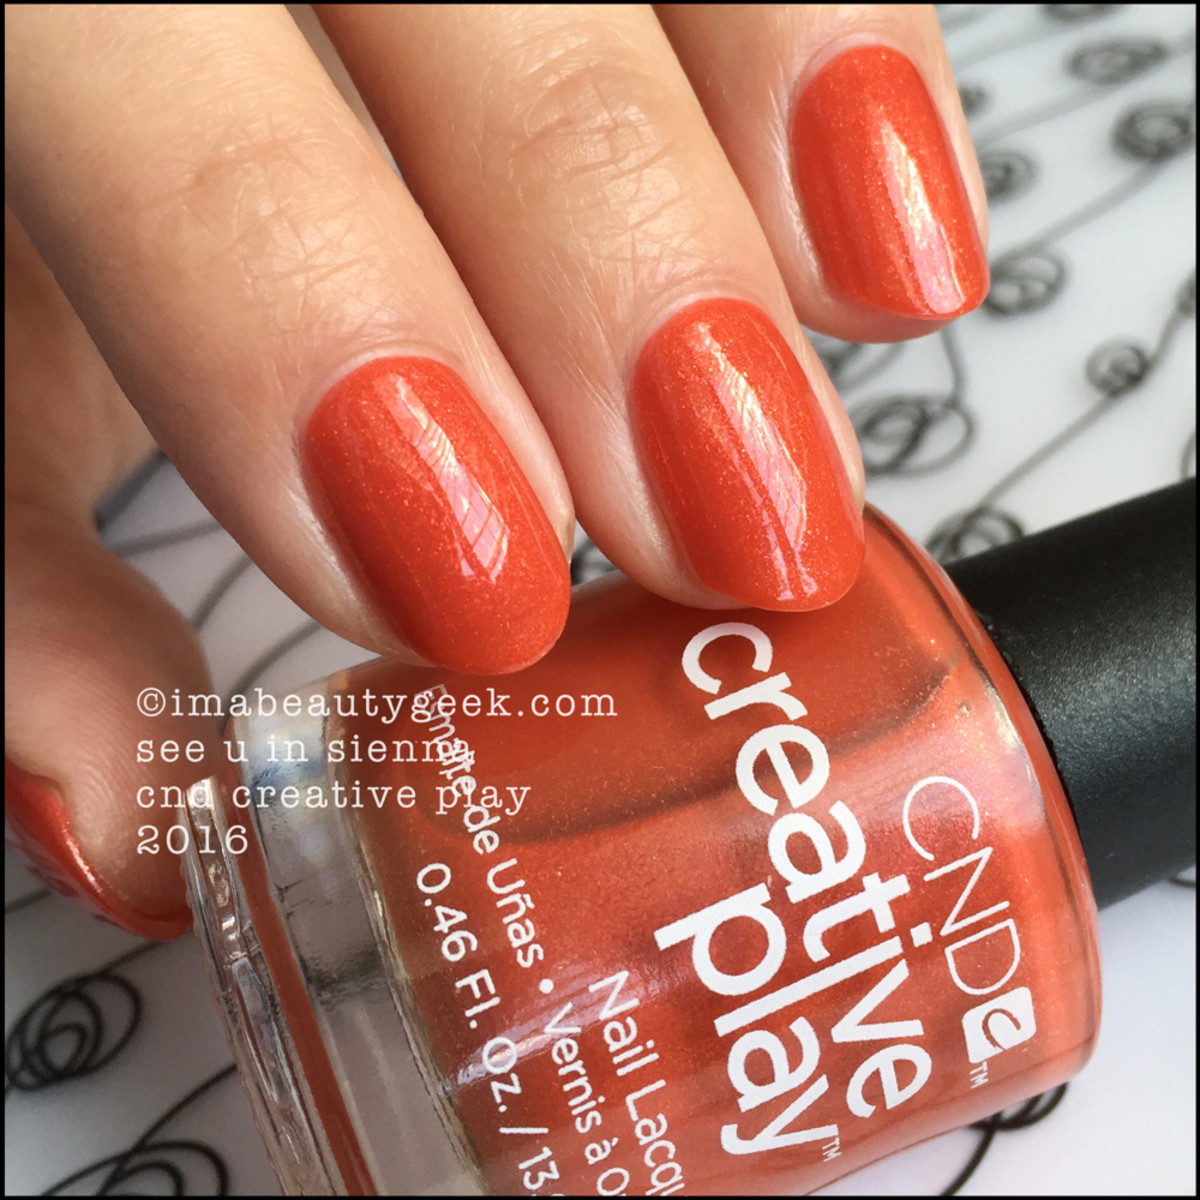 CND Creative Play See U In Sienna_CND Creative Play Nail Polish Swatches